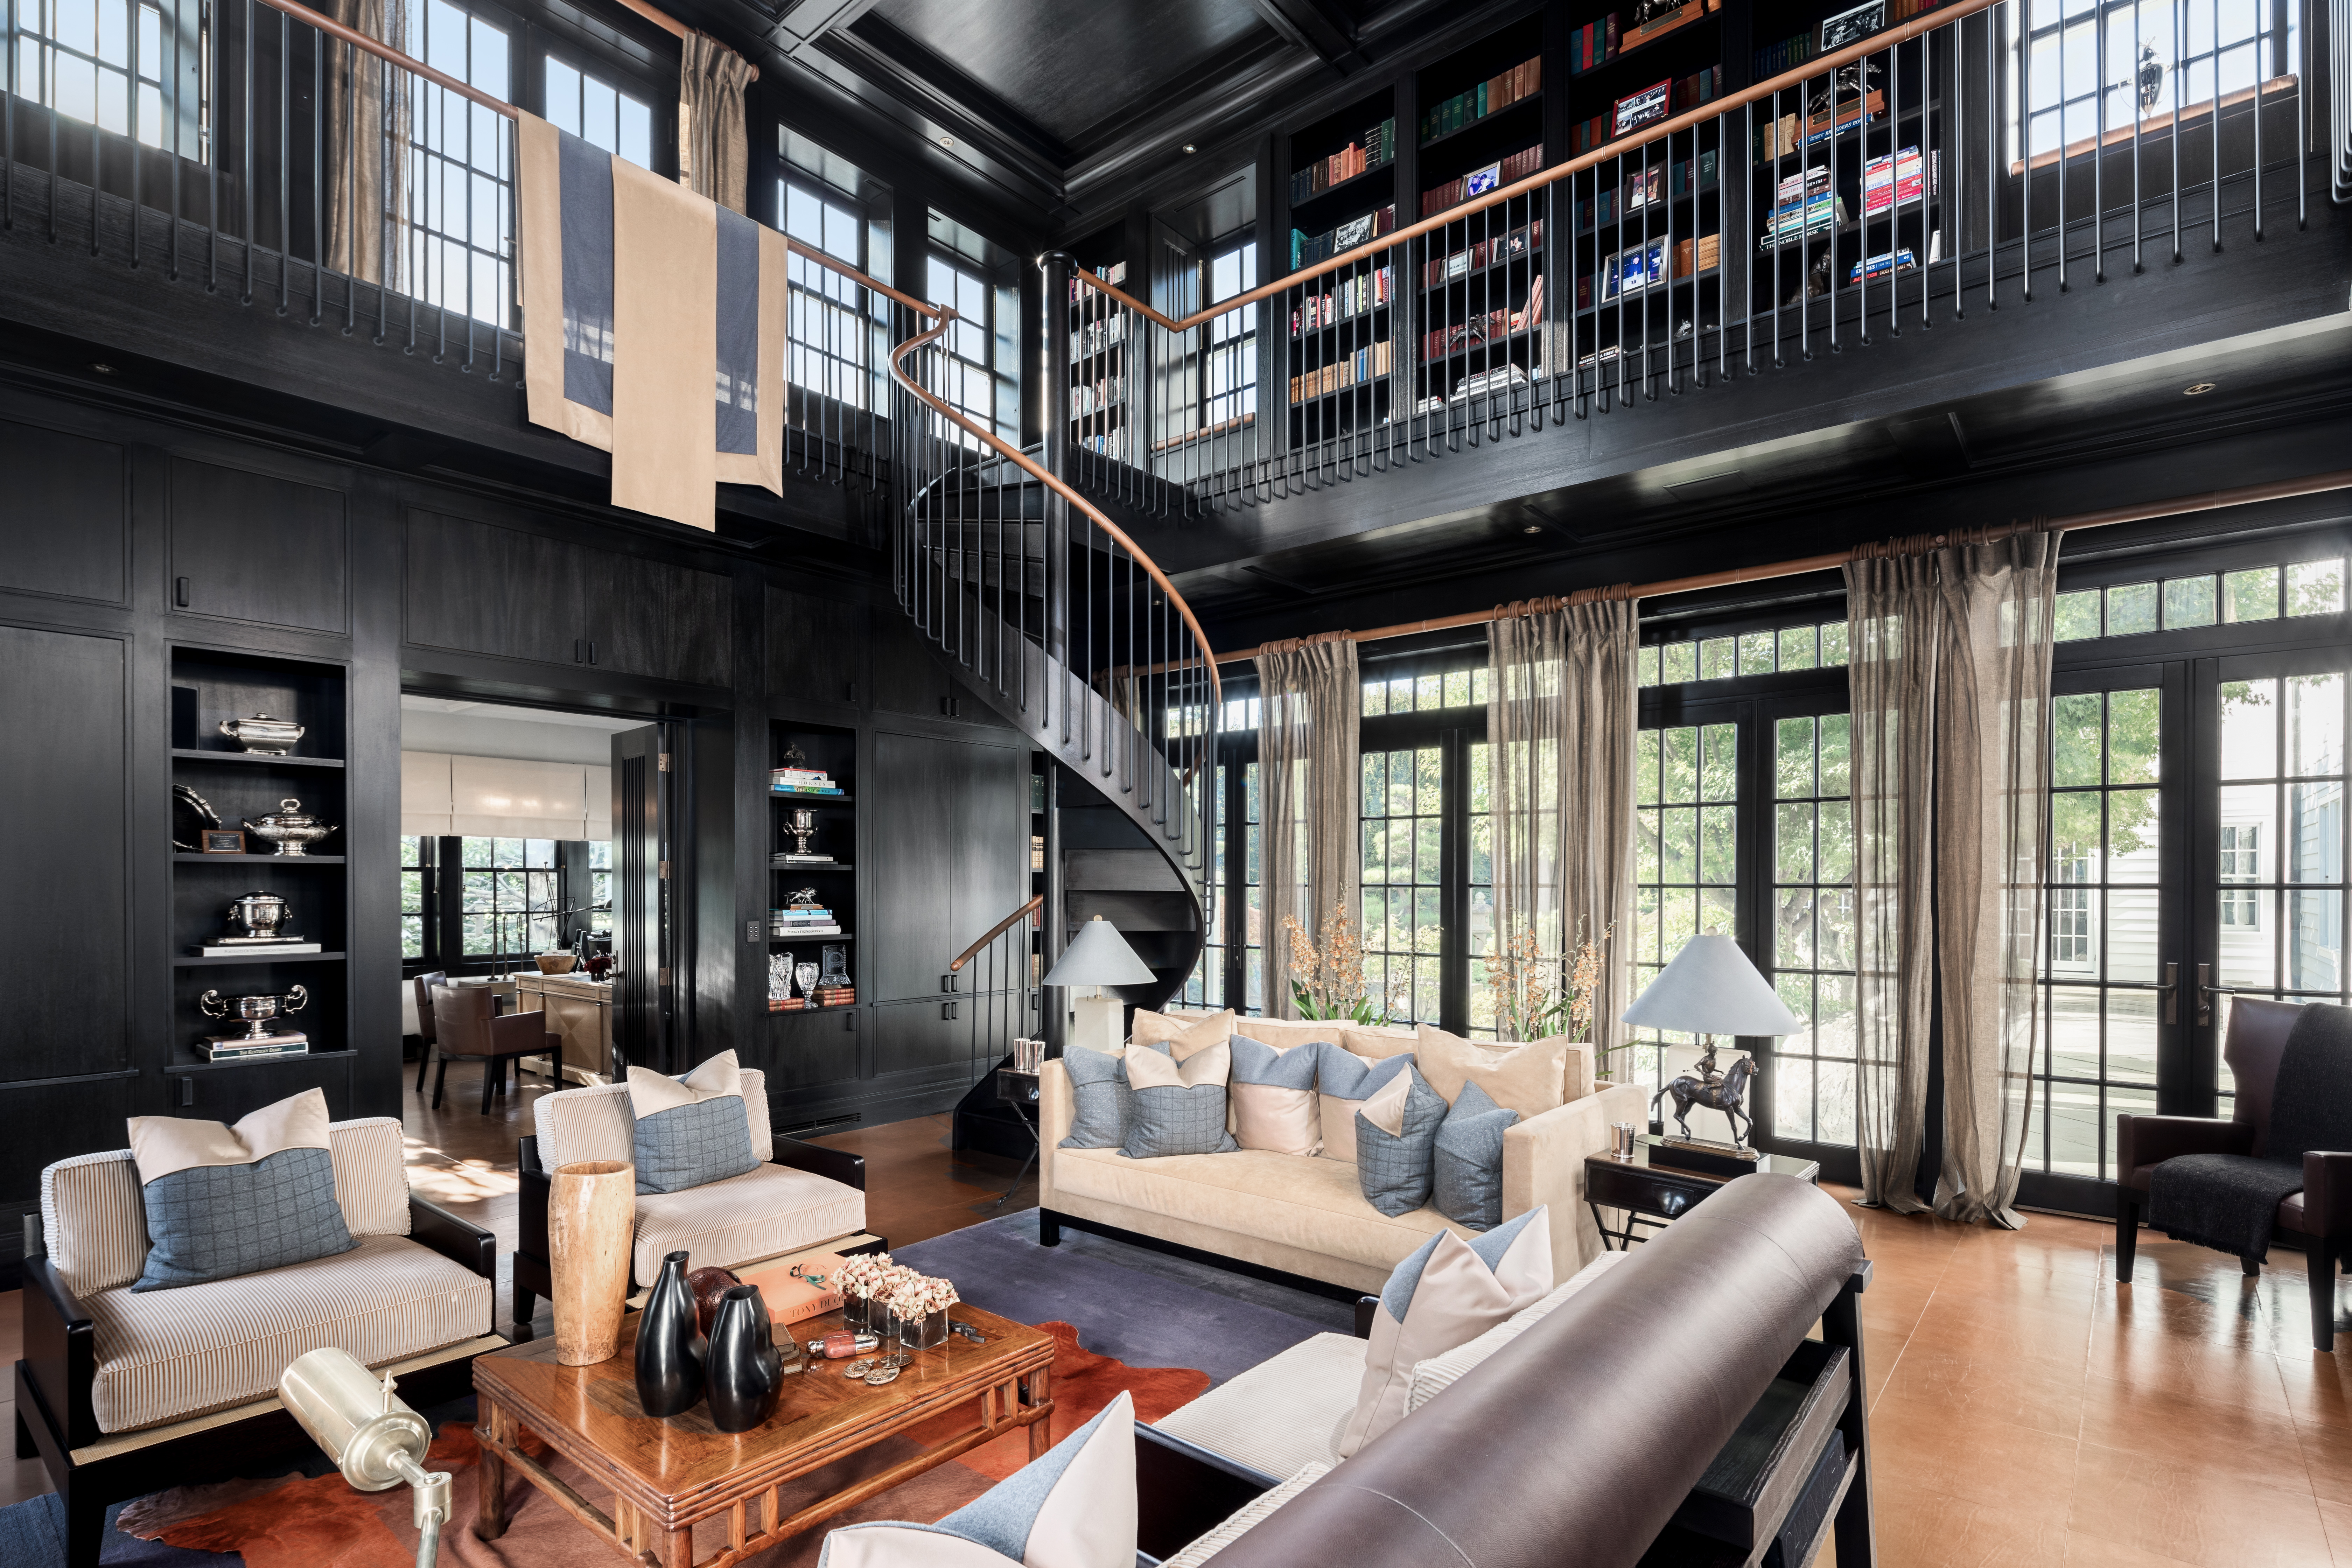 A two-story library has black walls and cream colored furniture. A balustrade wraps around the second level. On the first level, french doors let out onto the landscaped grounds.